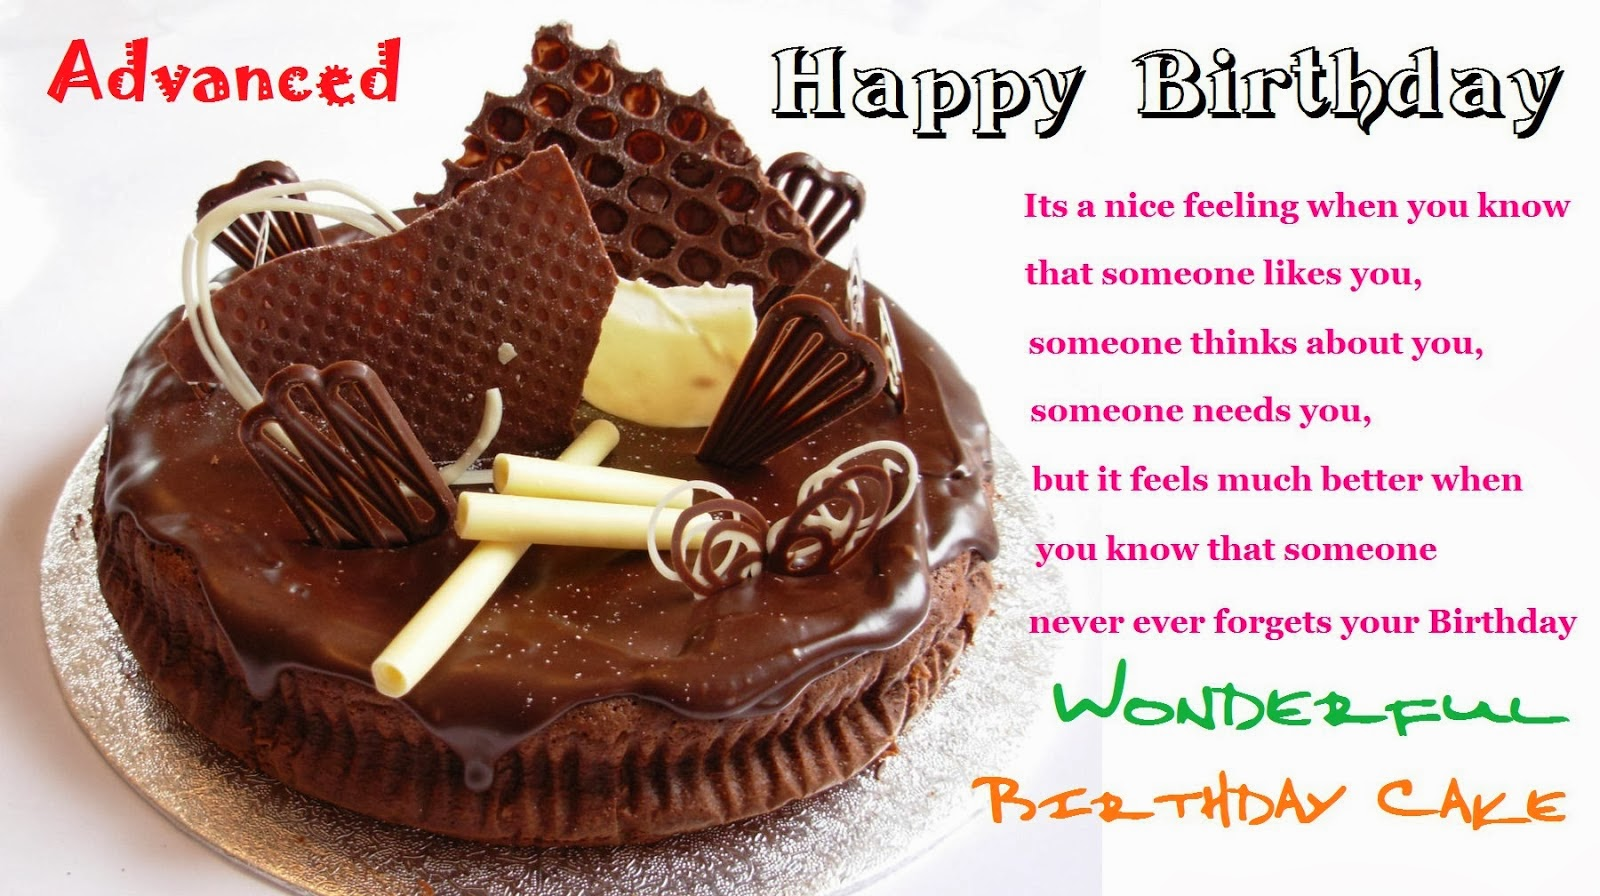 Happy birthday wishes for a friend pictures funny quotes pictures happy birthday wishes for a friend pictures kristyandbryce Gallery